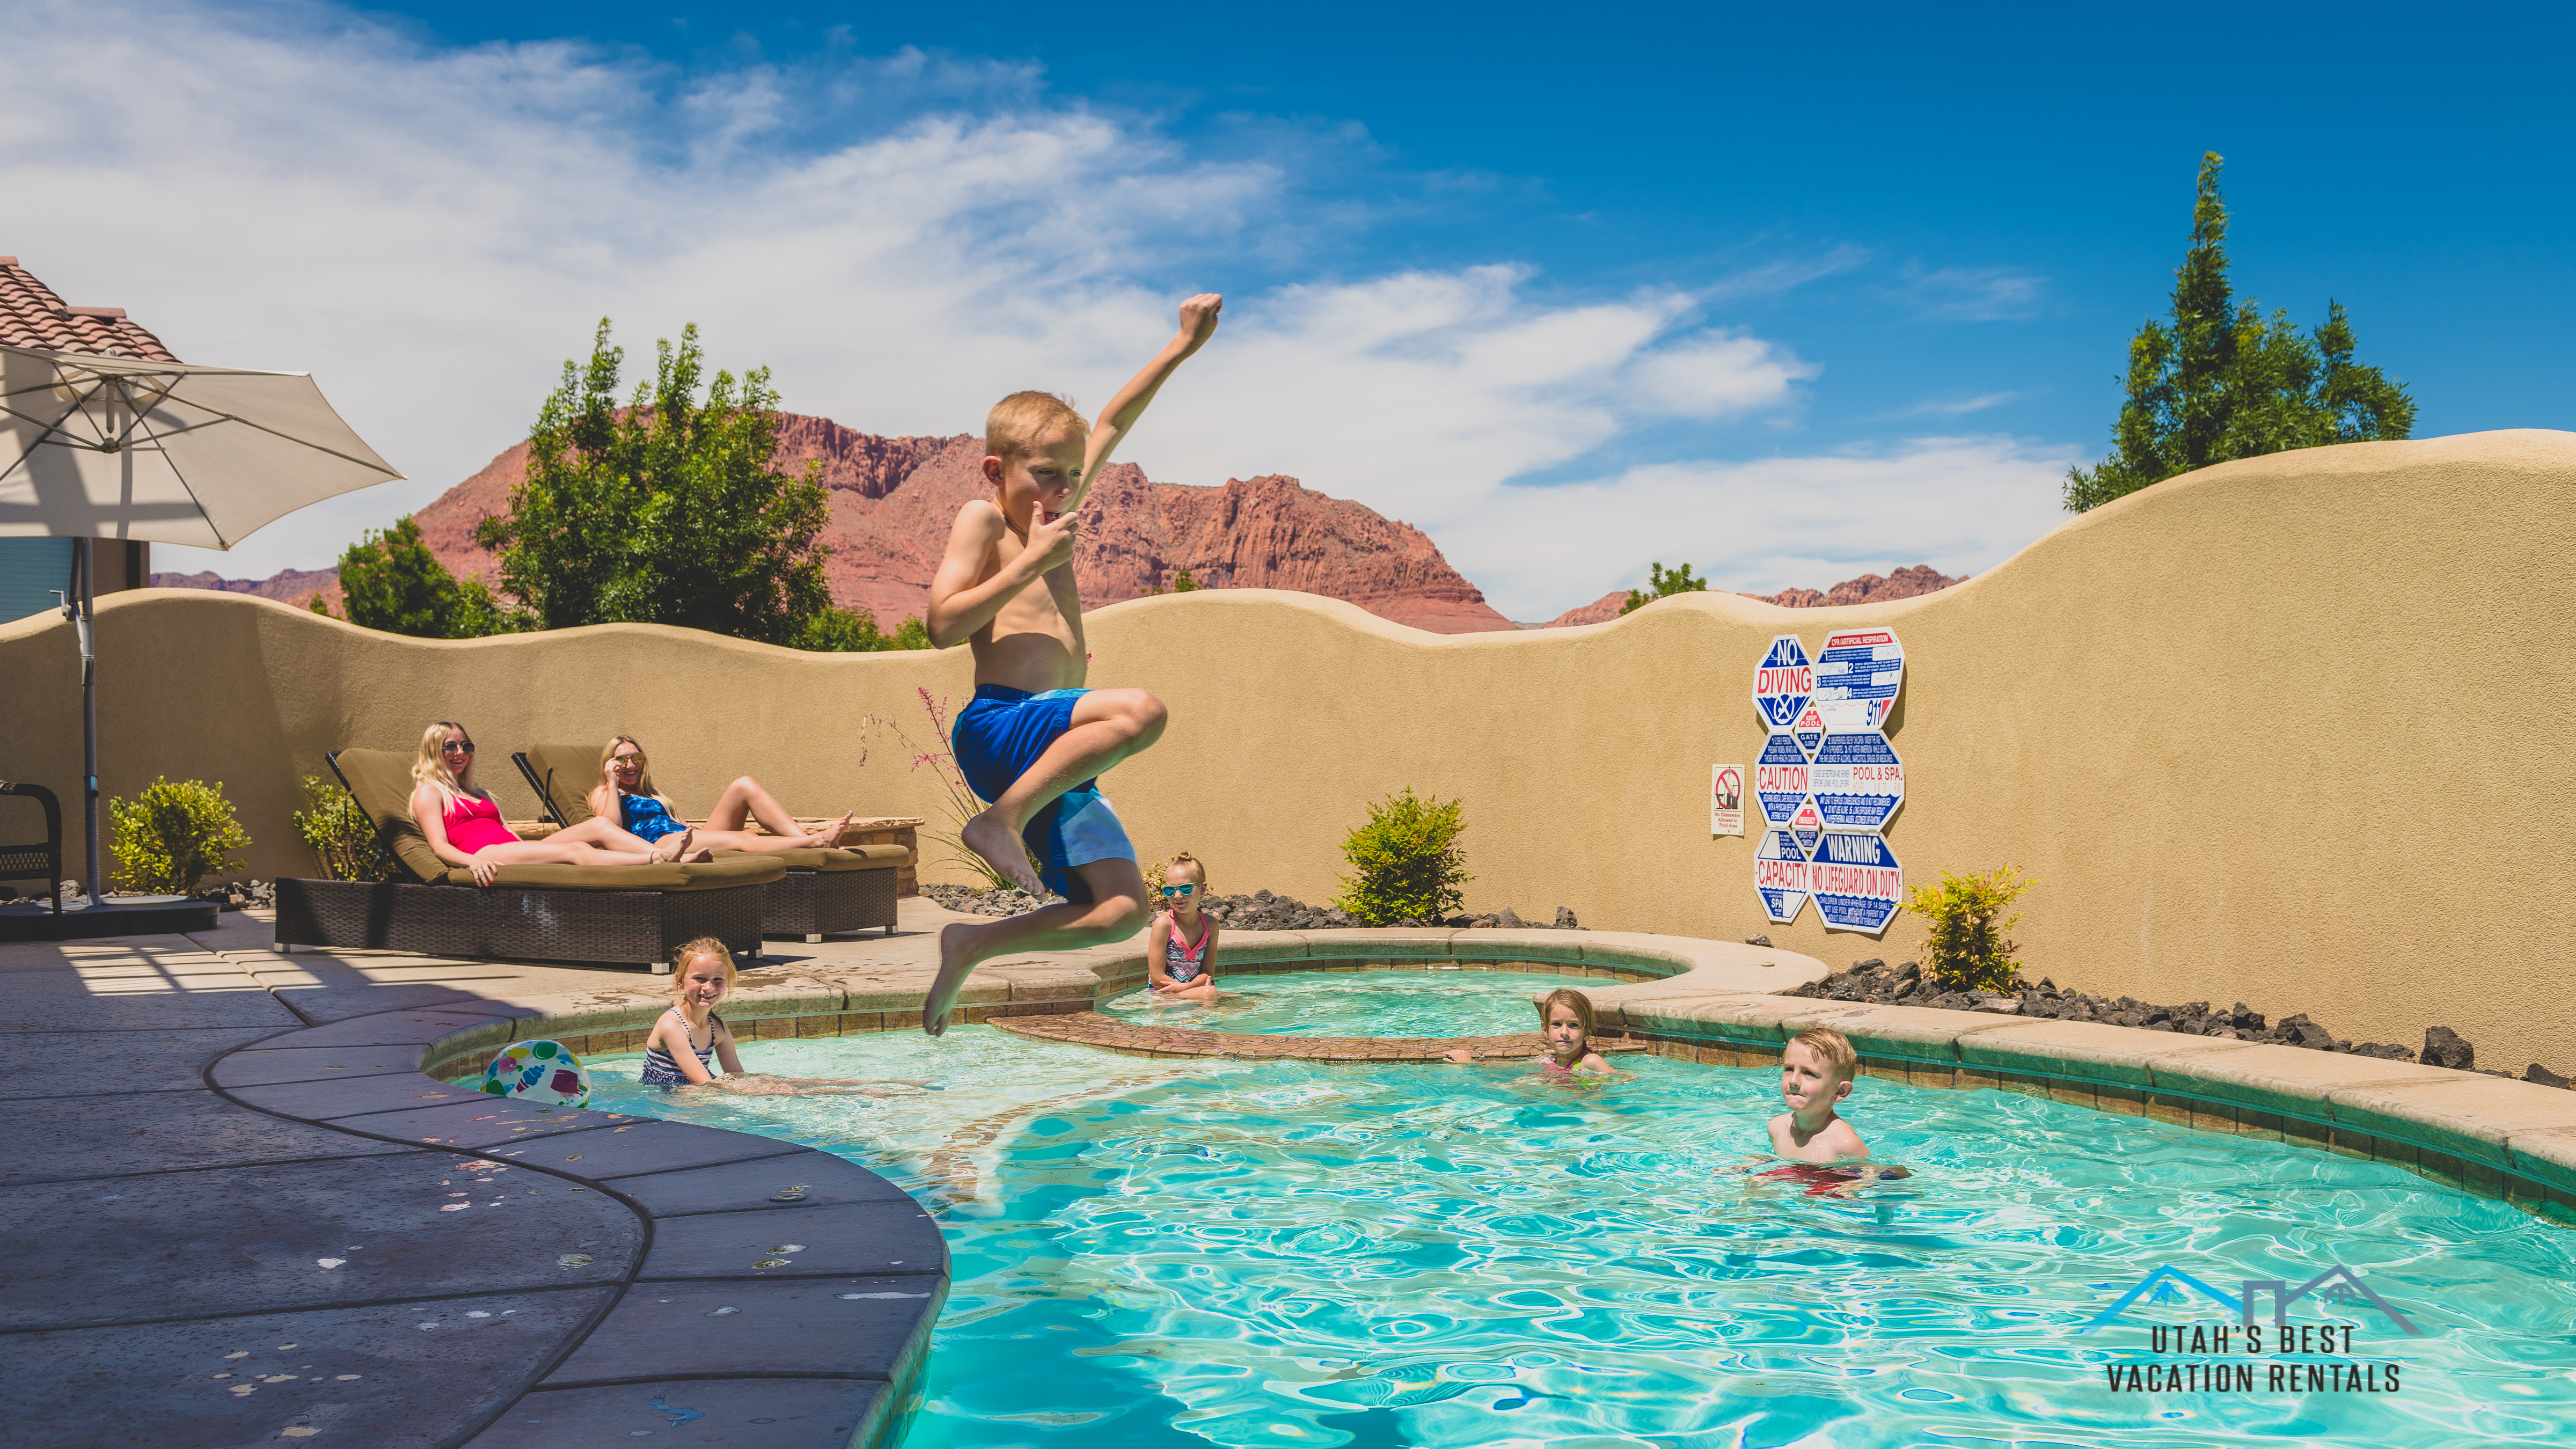 Utah Family Reunion Homes with Private Swimming Pool - Utah's Best Vacation Rentals